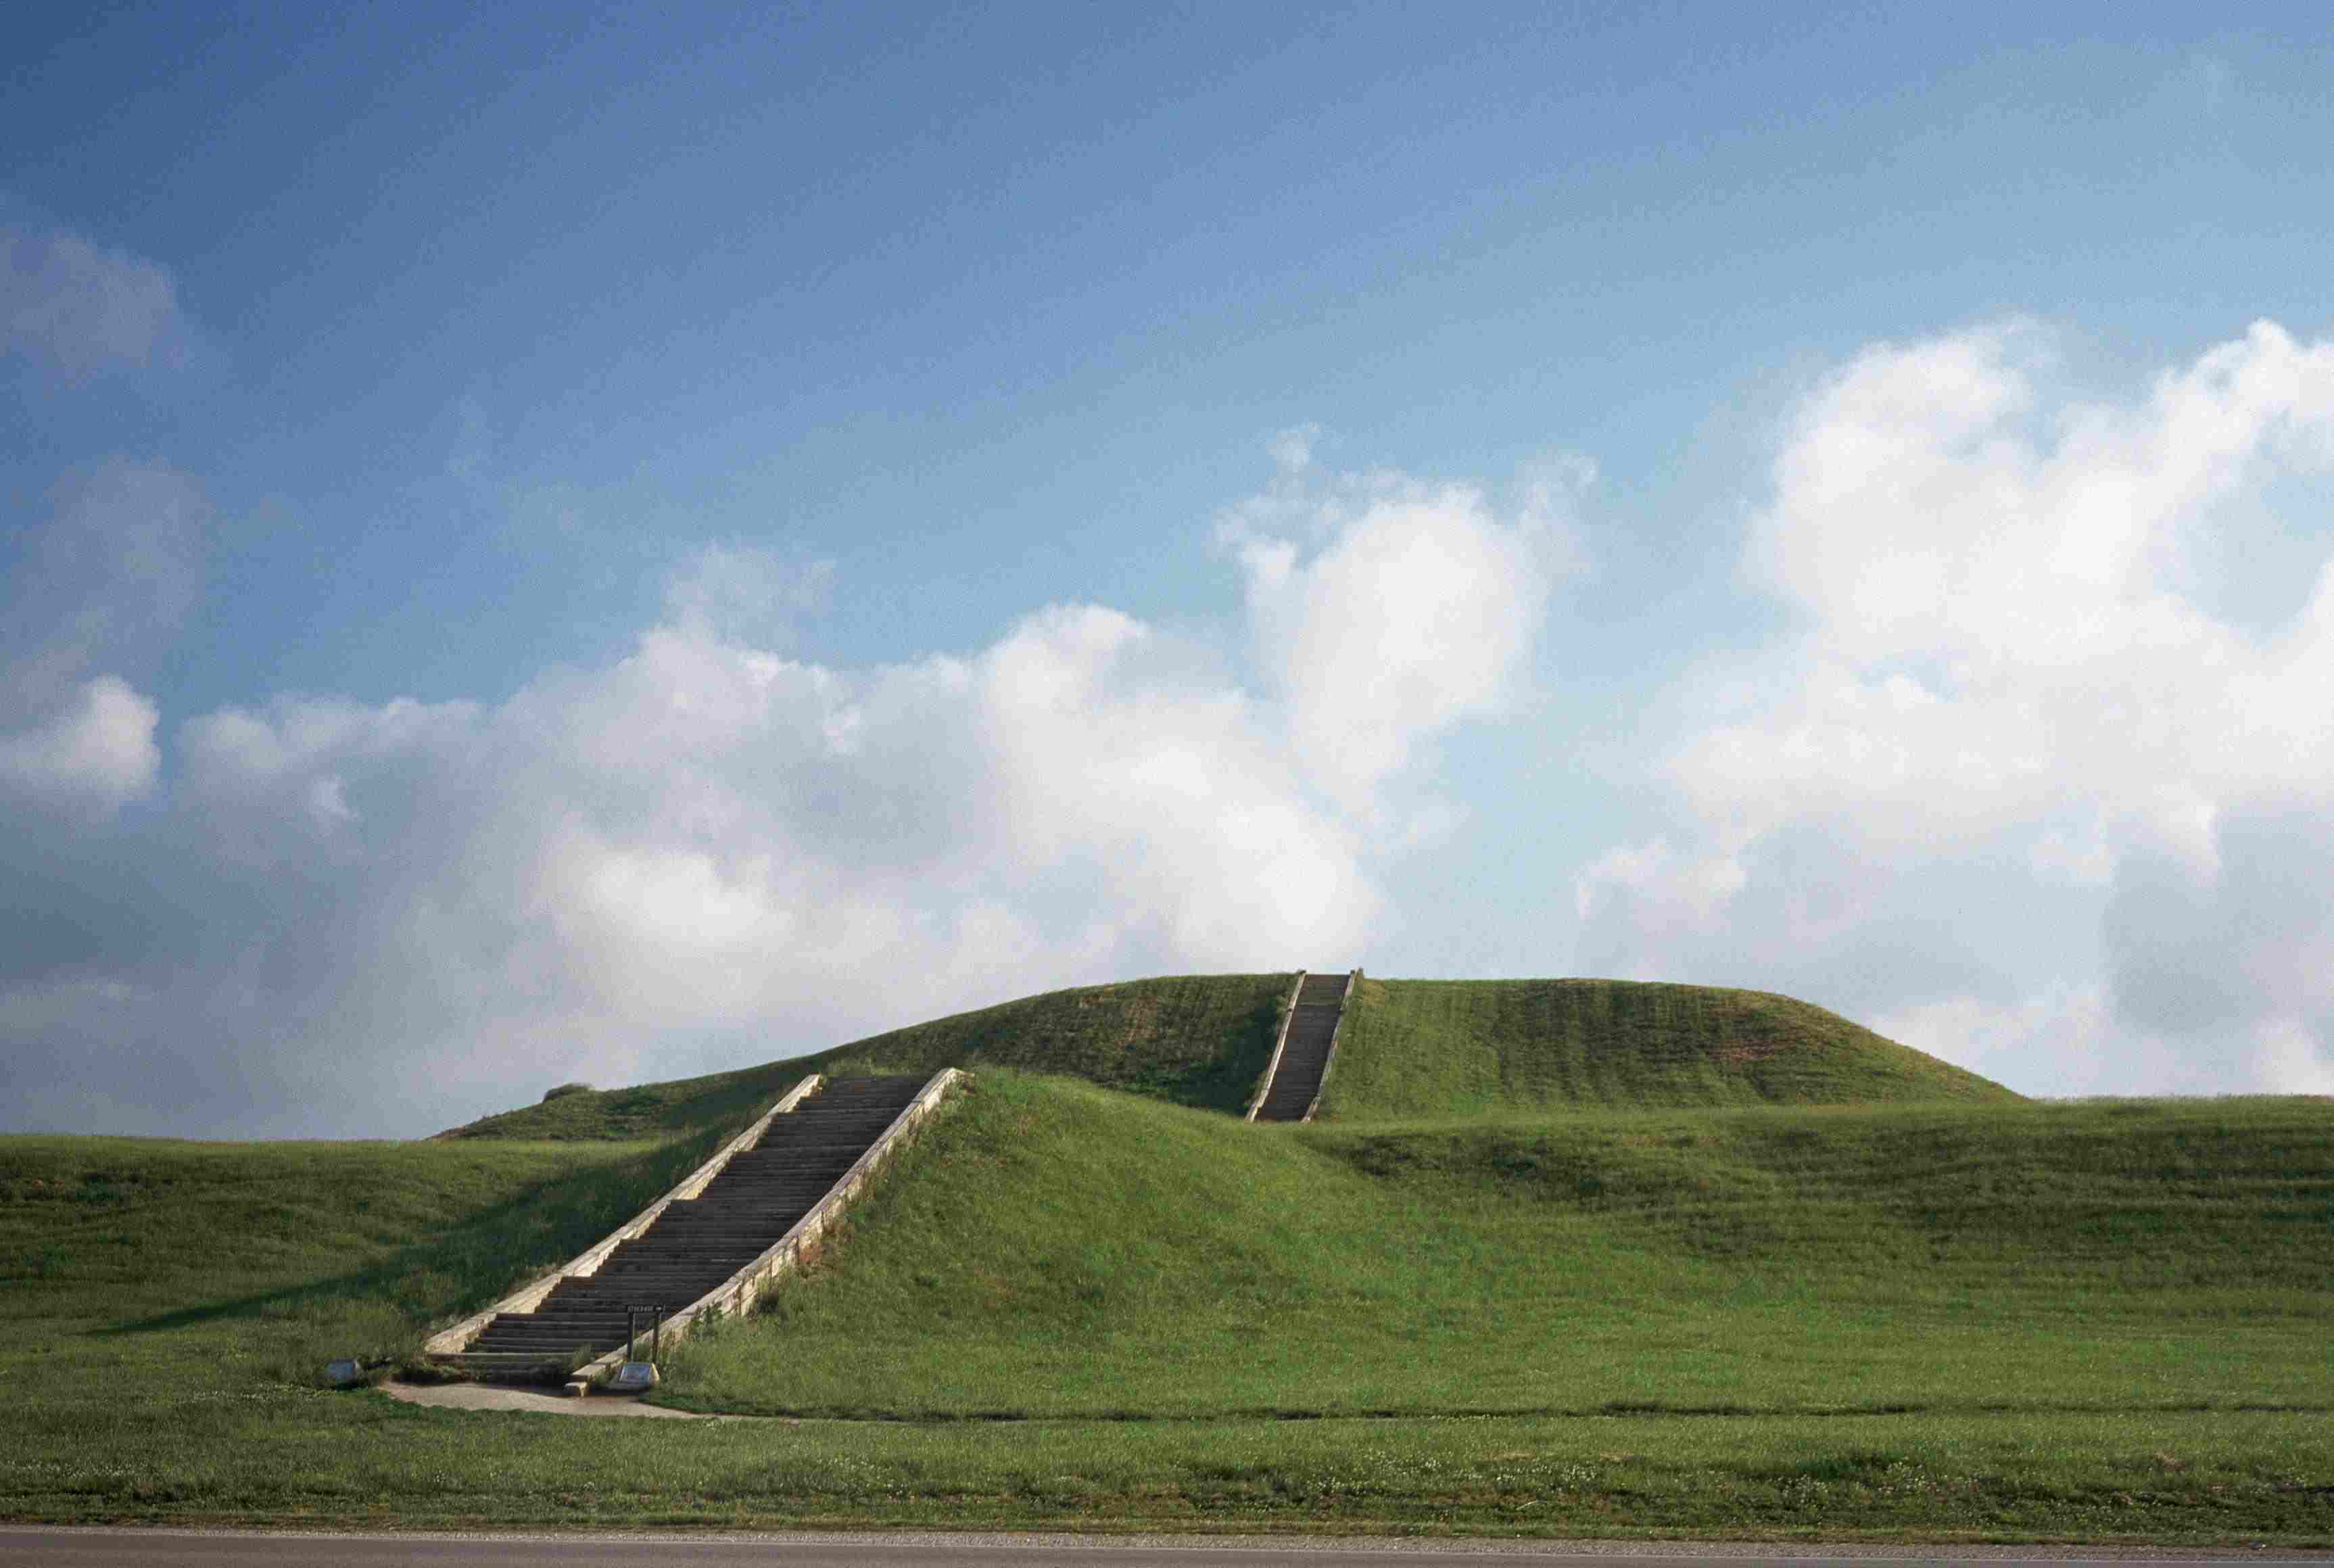 Cahokia Mounds against cloudy sky.